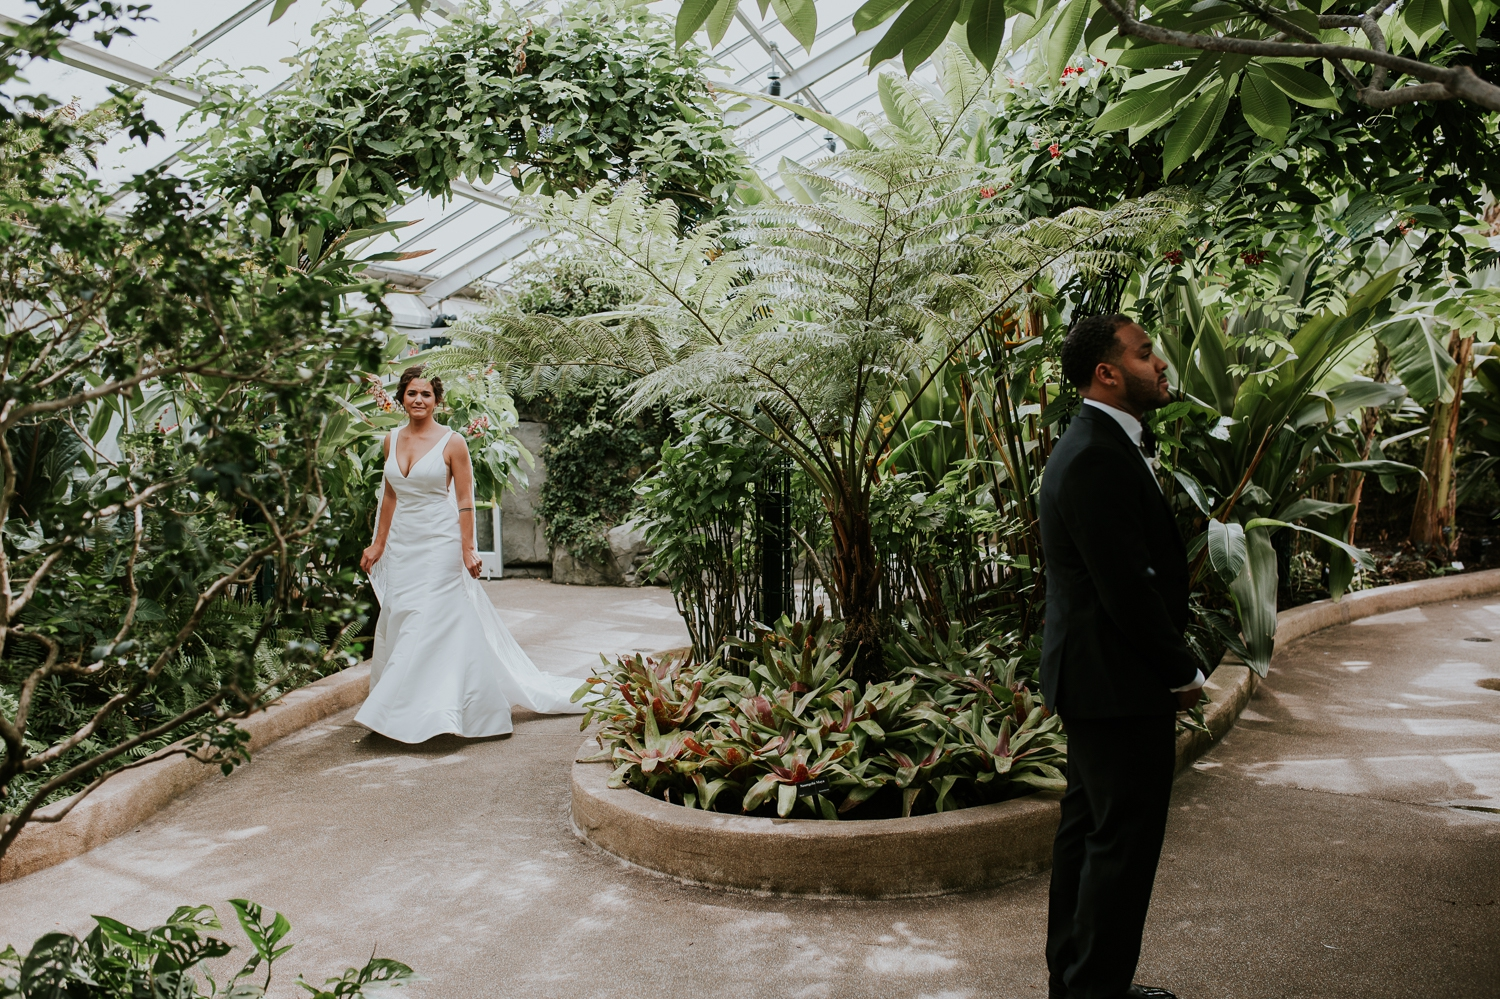 baltimore-maryland-rawlings-conservatory-wedding-portaits-photography 22.jpg